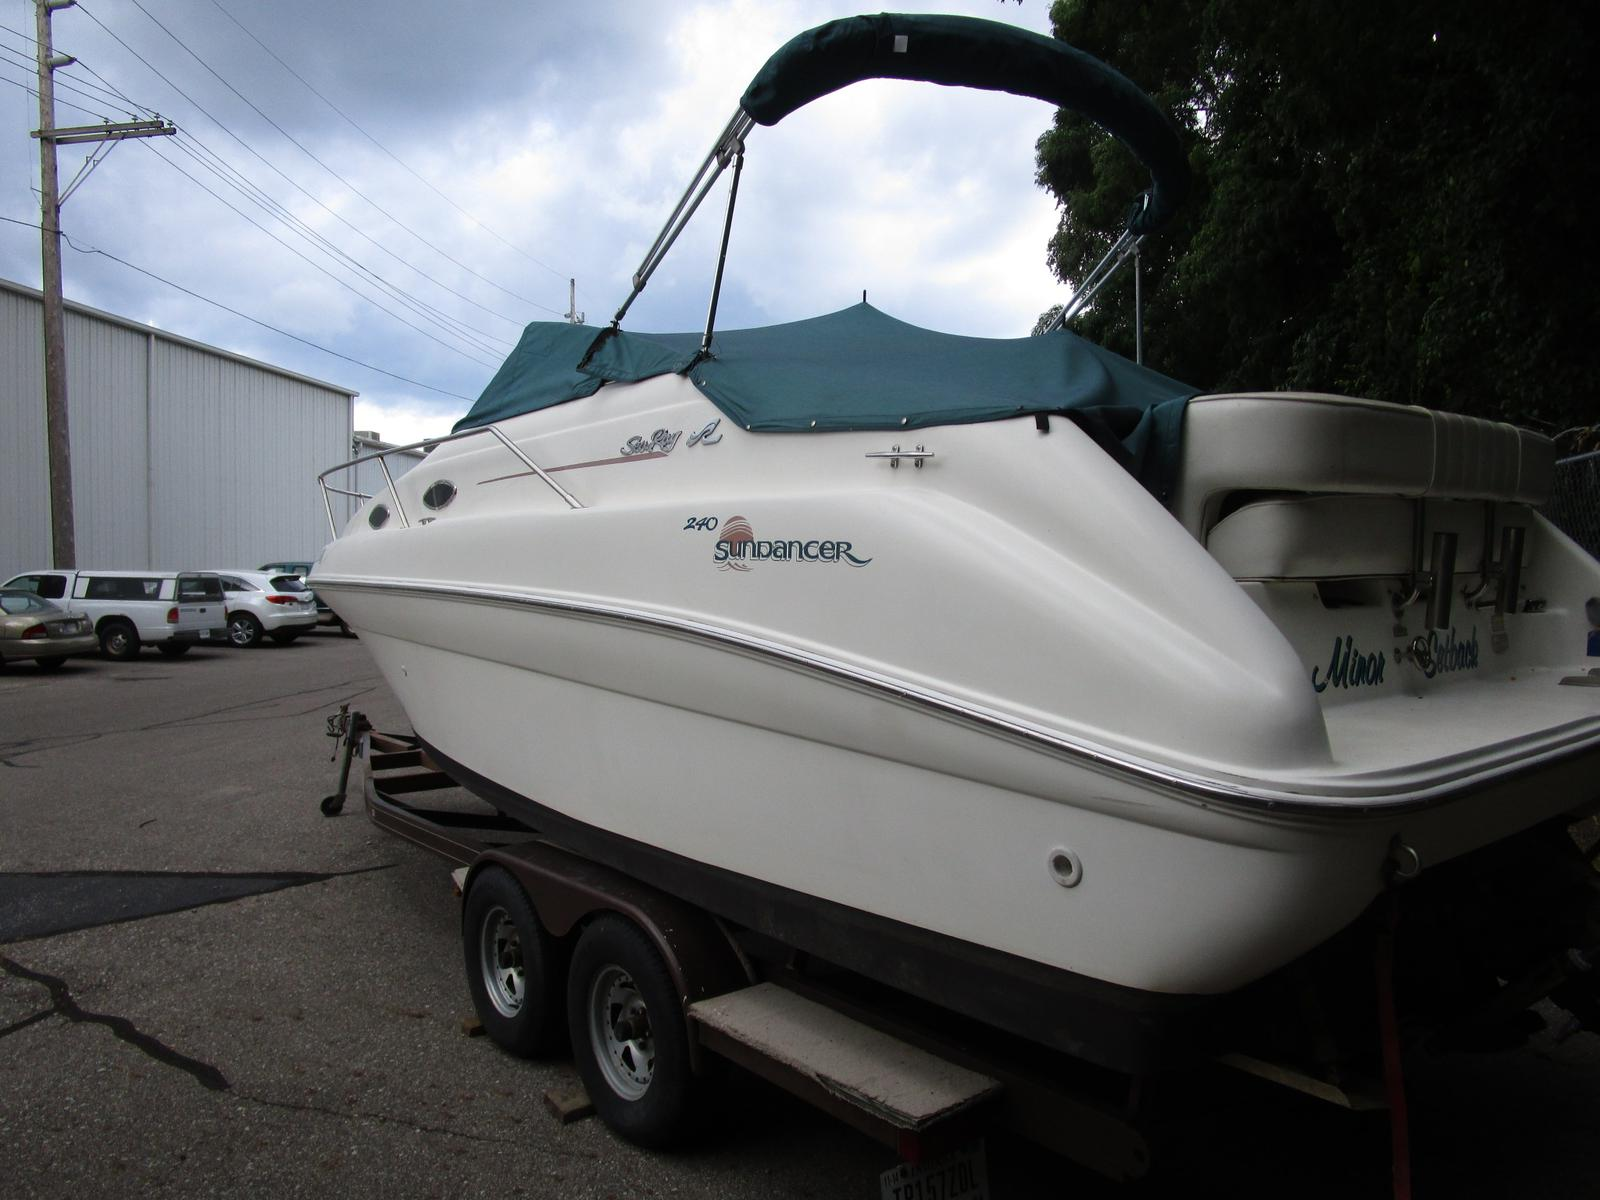 1997 Sea Ray boat for sale, model of the boat is 240 sundancer & Image # 3 of 8